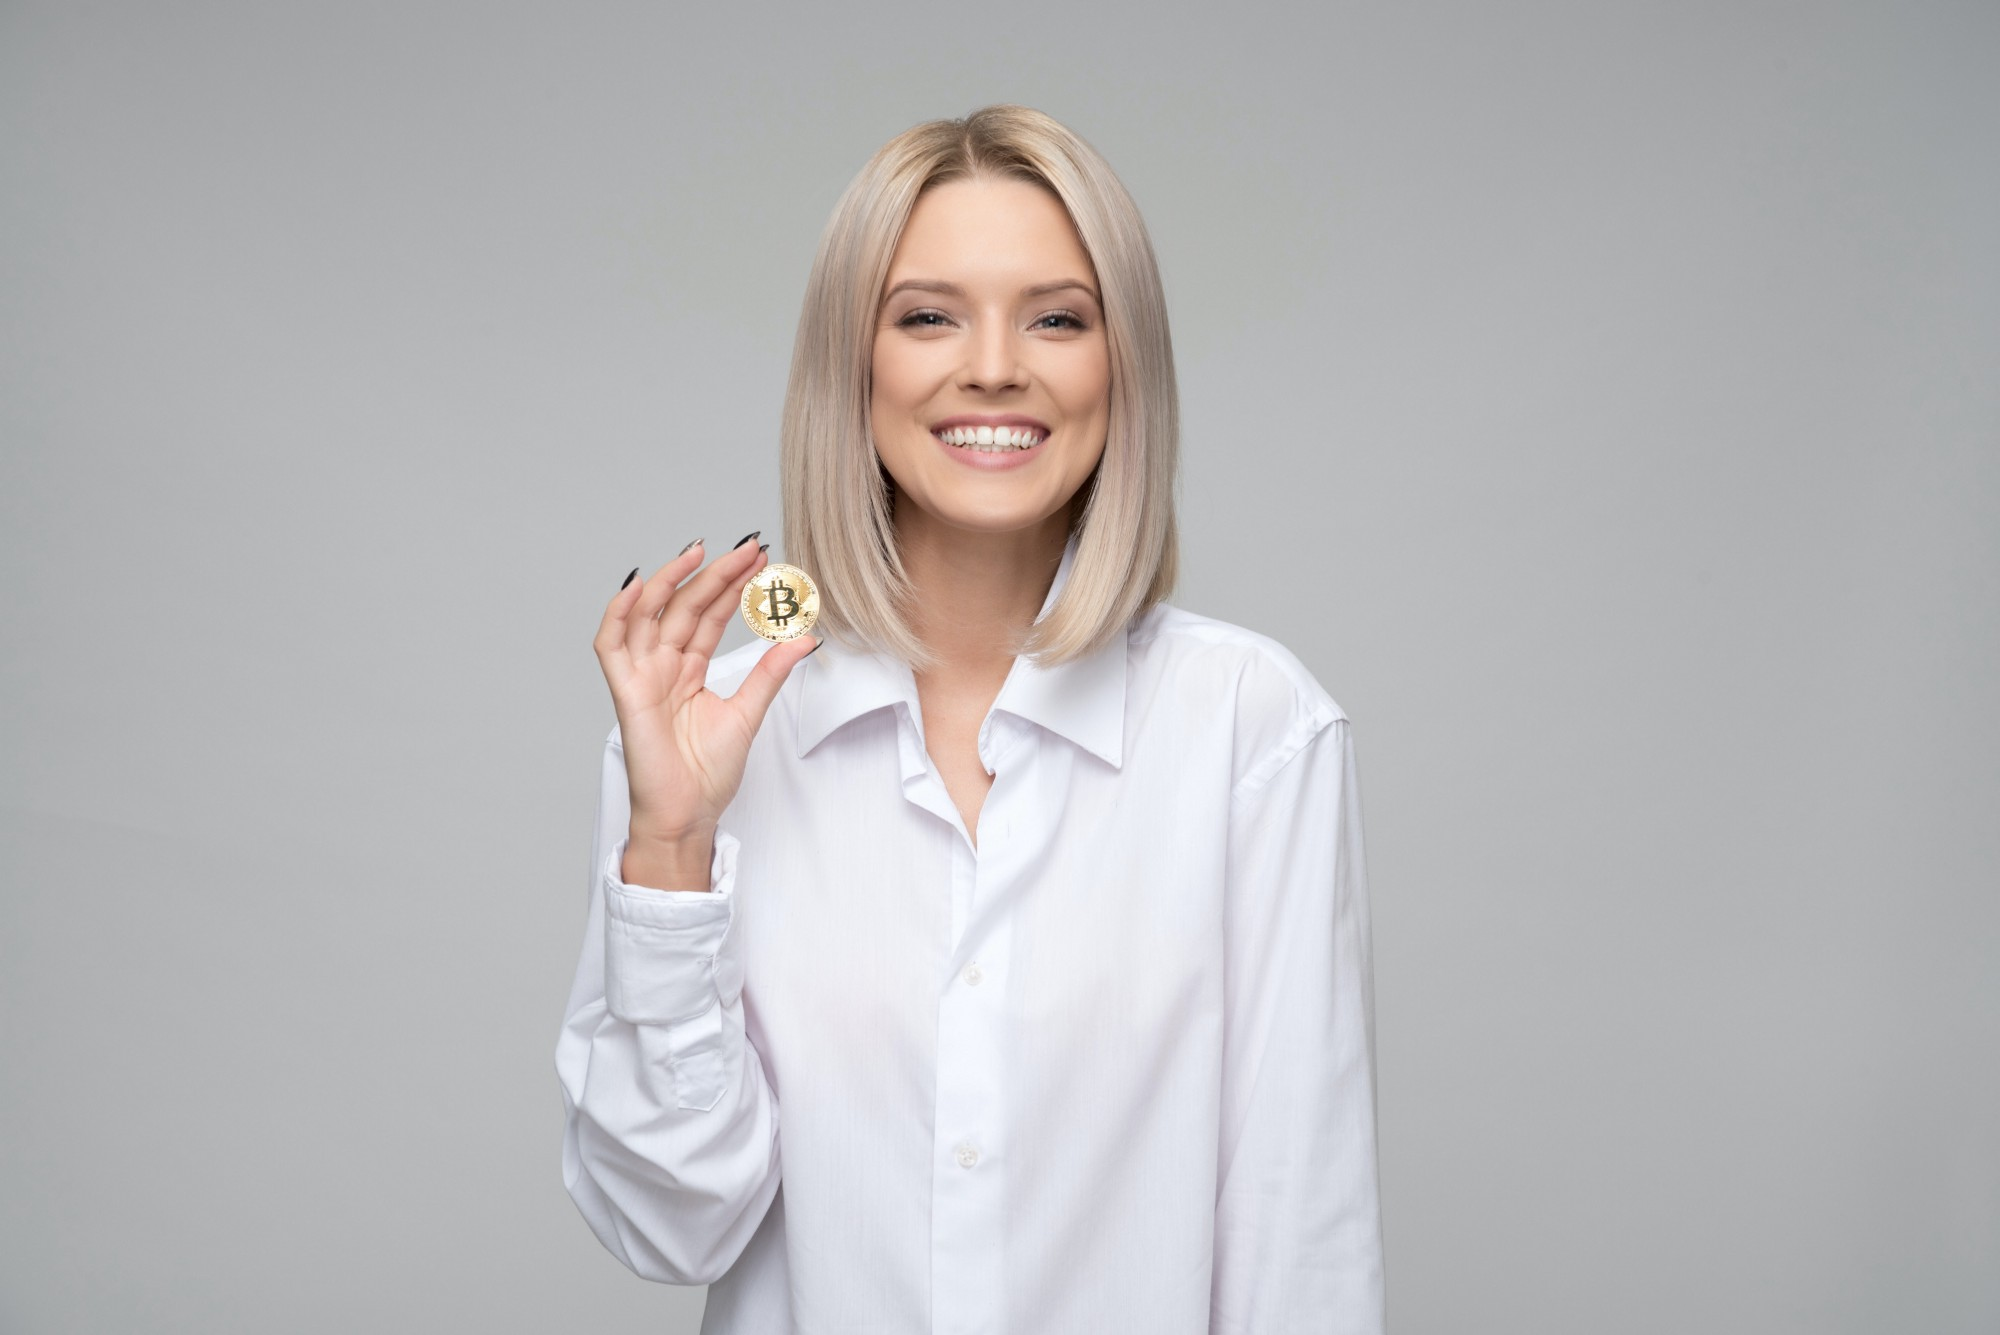 Woman smiling holding a Bitcoin cryptocurrency